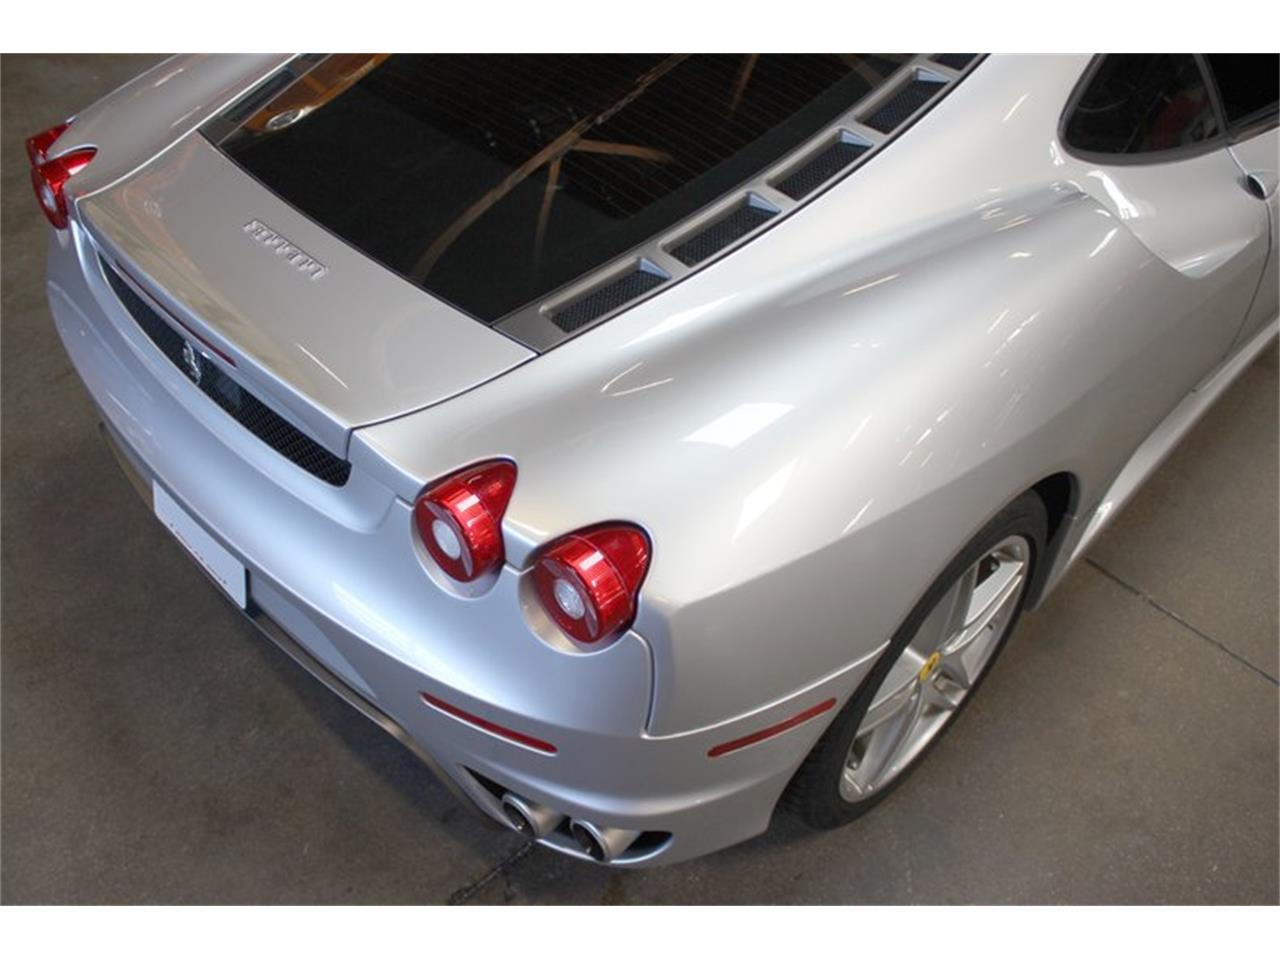 2005 Ferrari F430 for sale in San Carlos, CA – photo 20